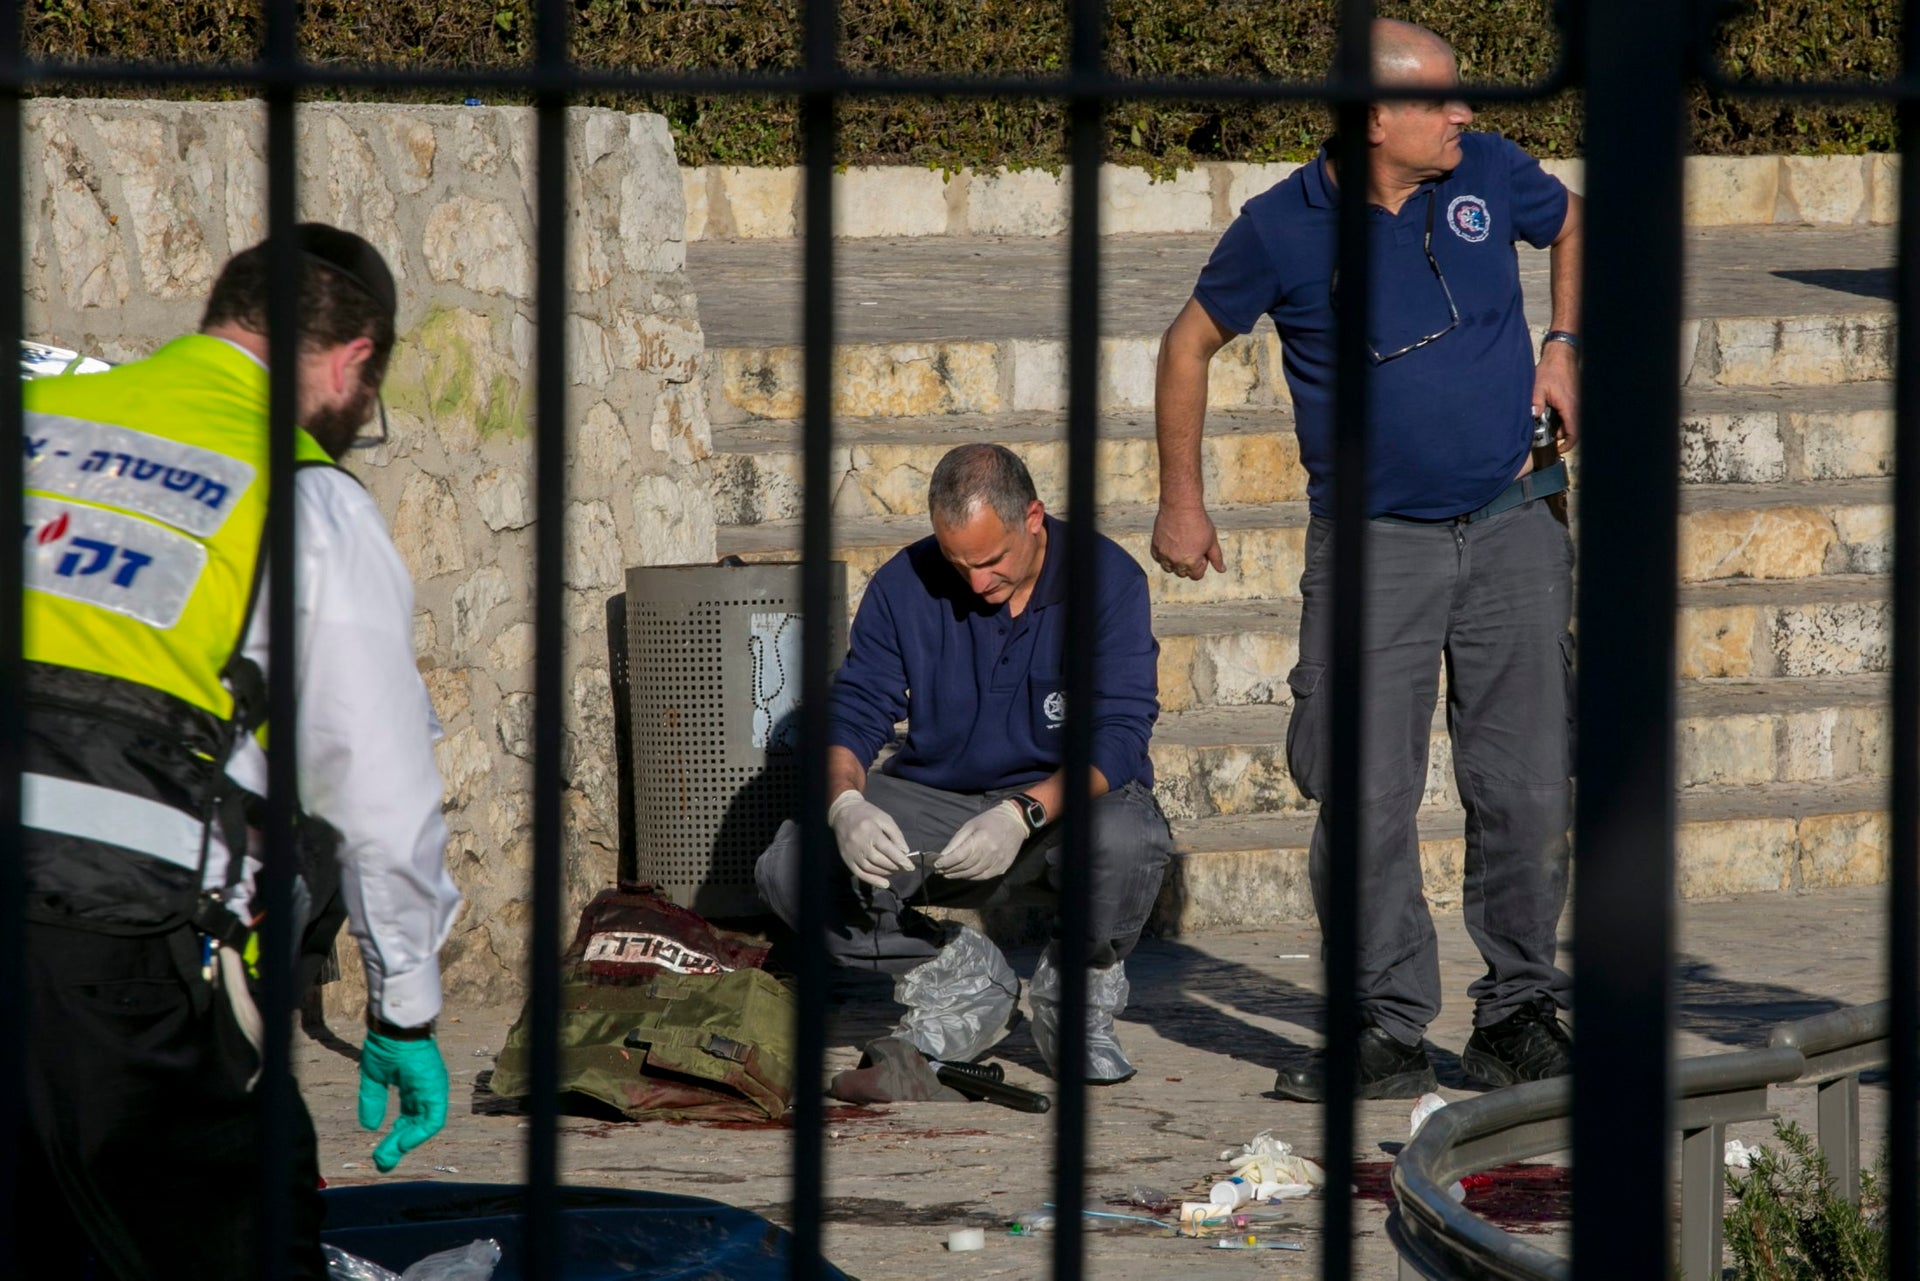 Forensics specialists examine a protective vest worn by one of the border policewomen wounded in the terror attack near Damascus Gate in Jerusalem, February 3, 2016.